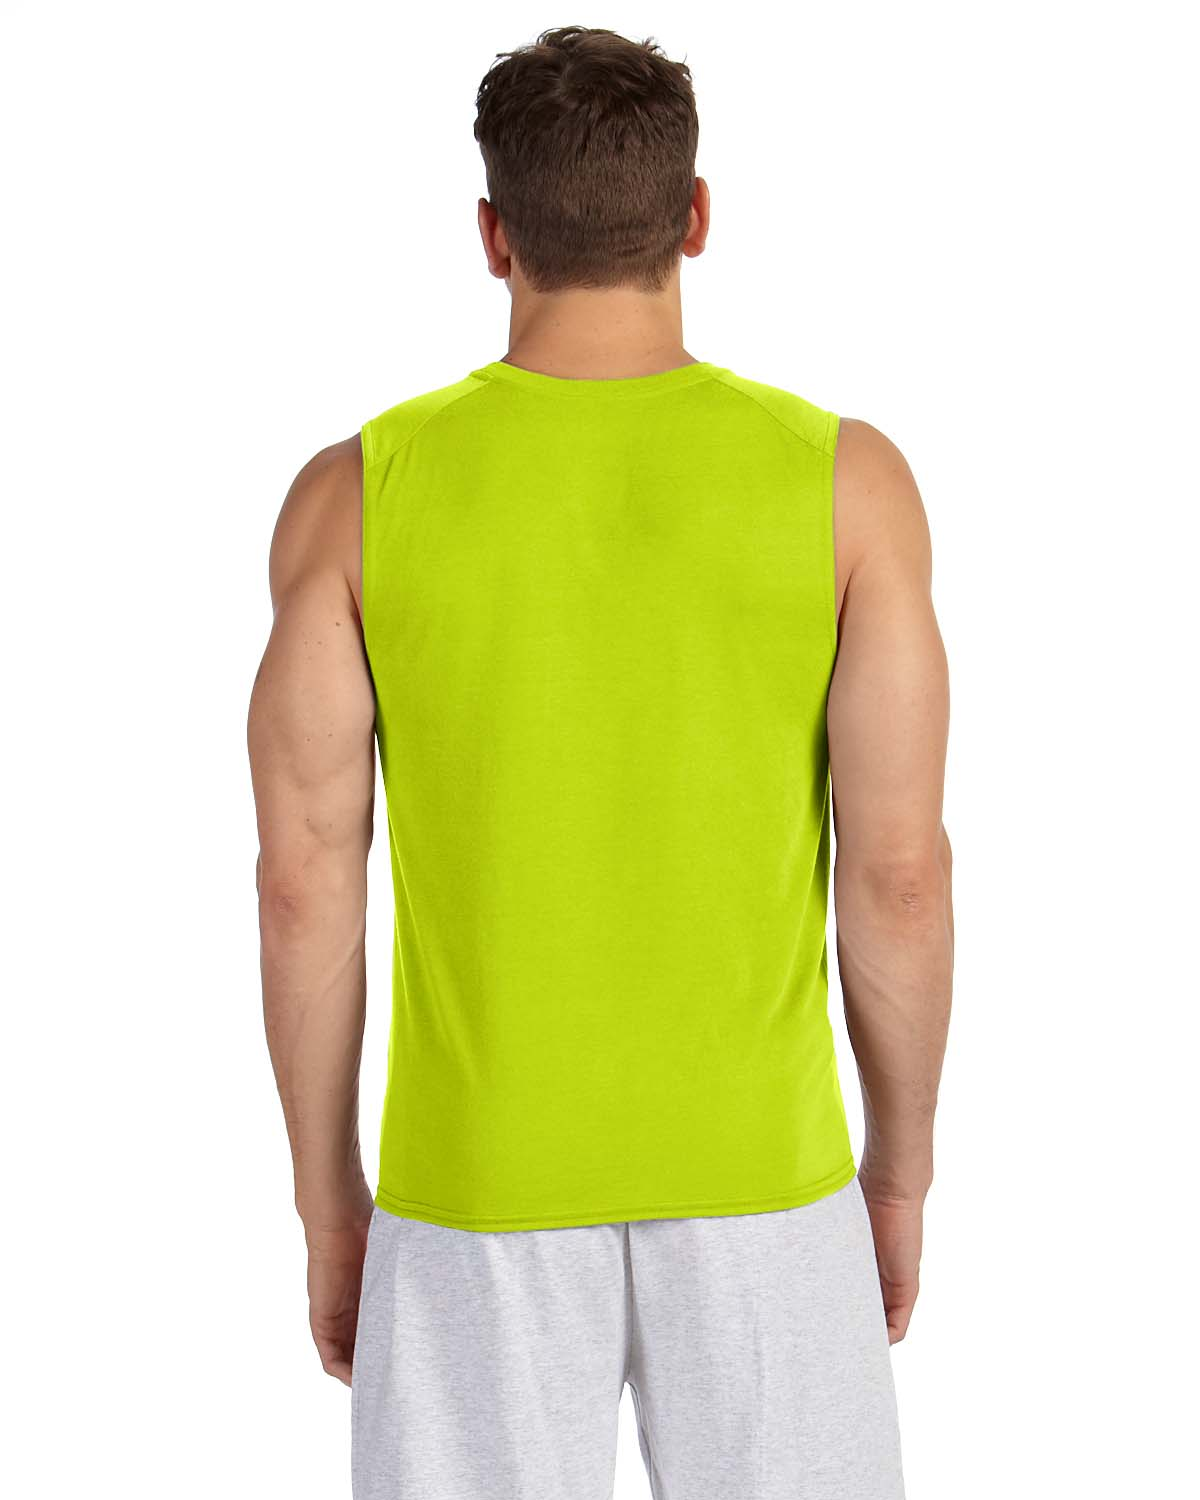 new gildan performance dri fit sleeveless muscle t shirt